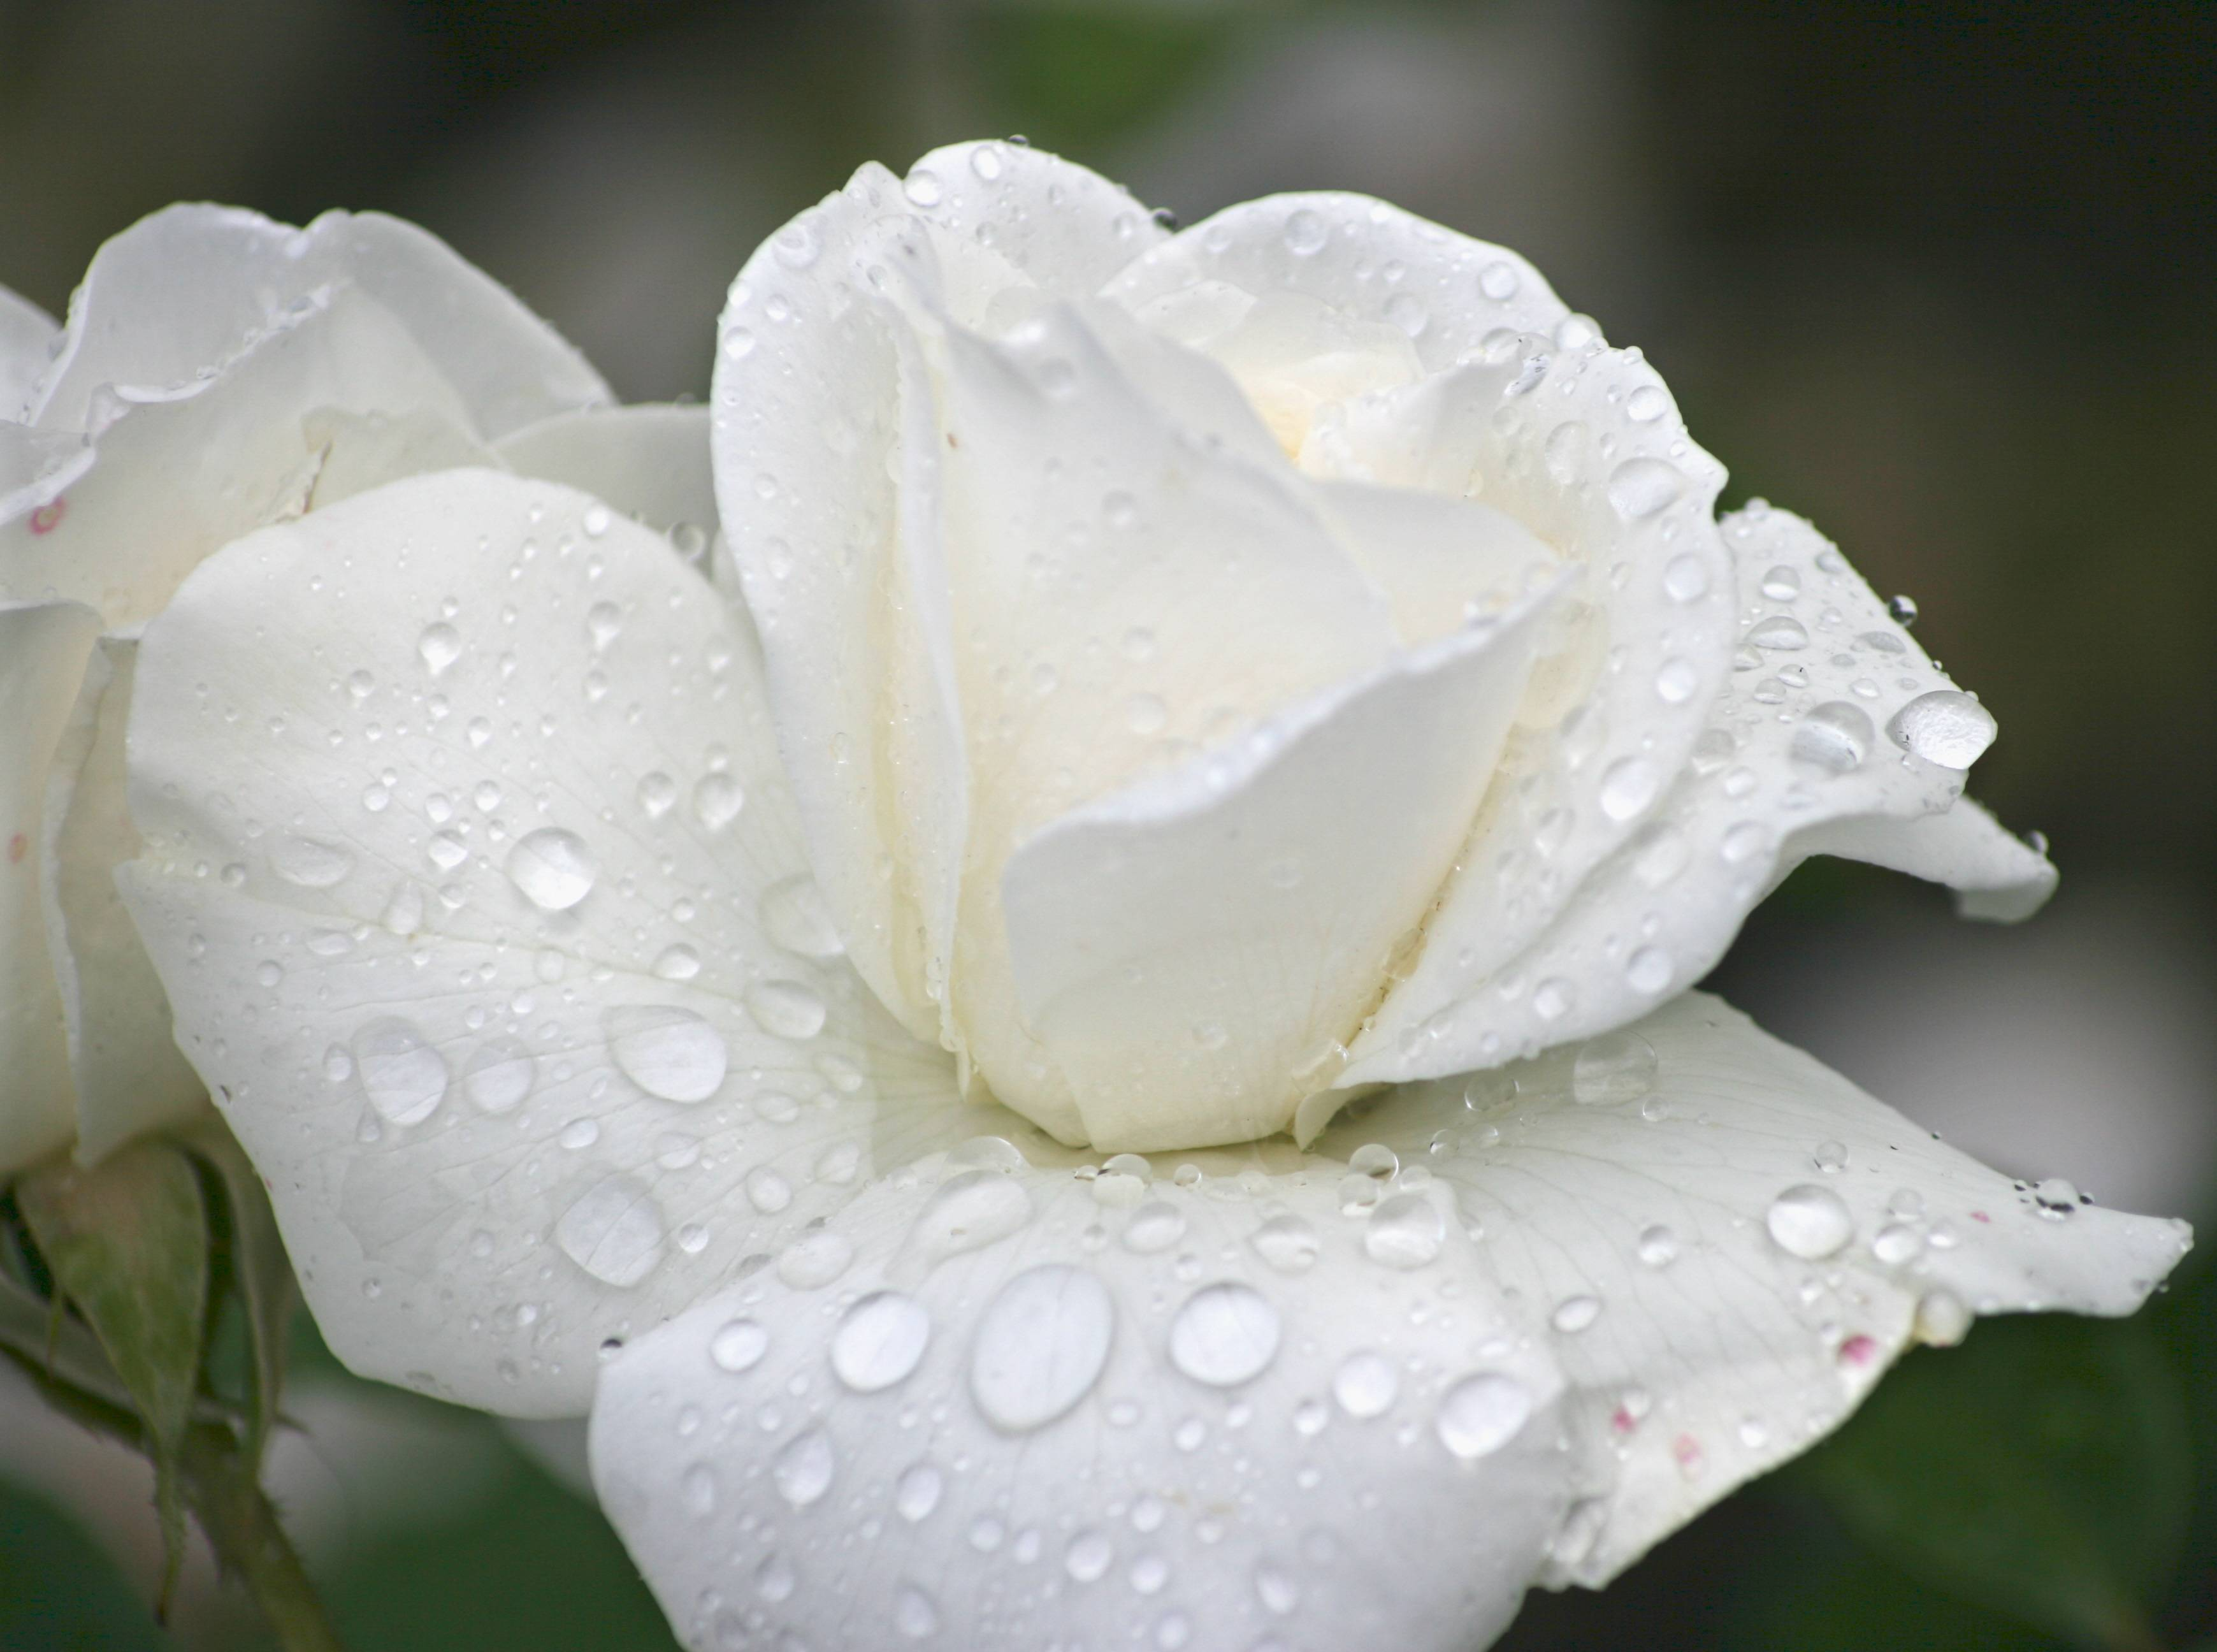 Wallpapers of raindrops wallpaper cave raindrops on rose wallpaper rose wallpaper altavistaventures